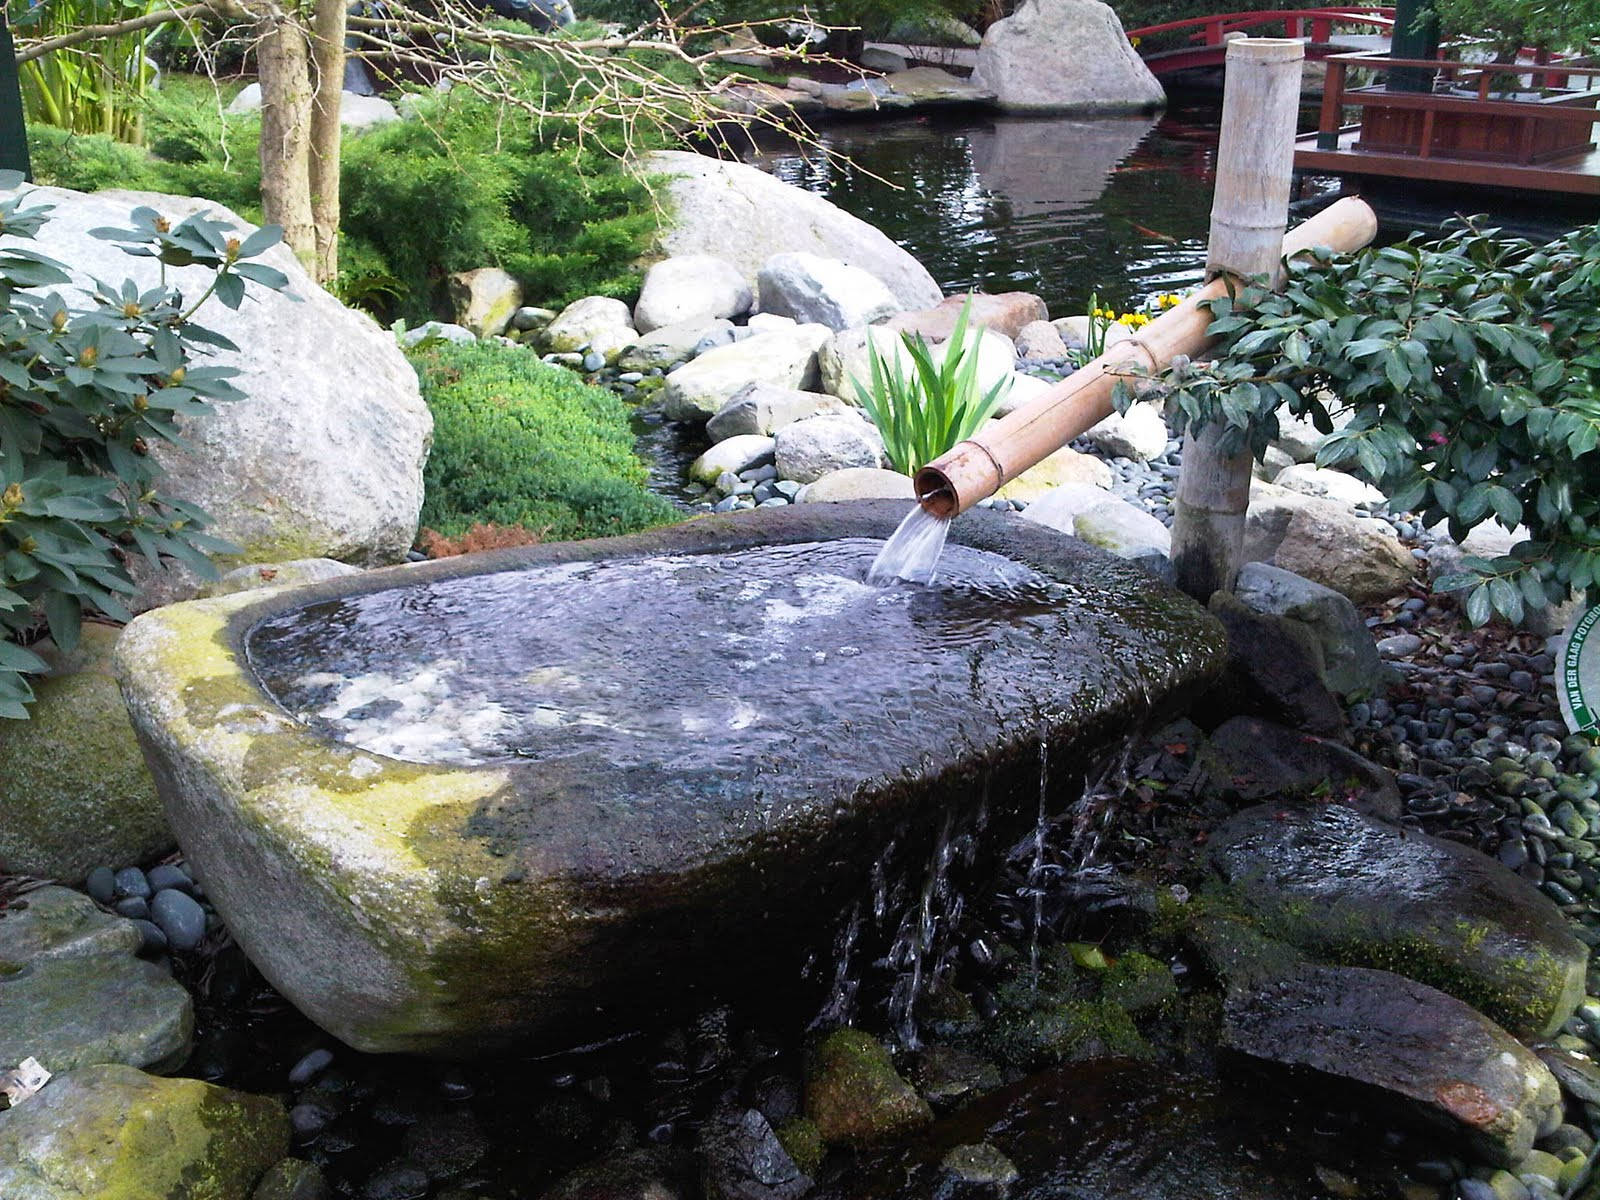 Japanese watergarden in west holland the weekend traveller for Japanese outdoor plants